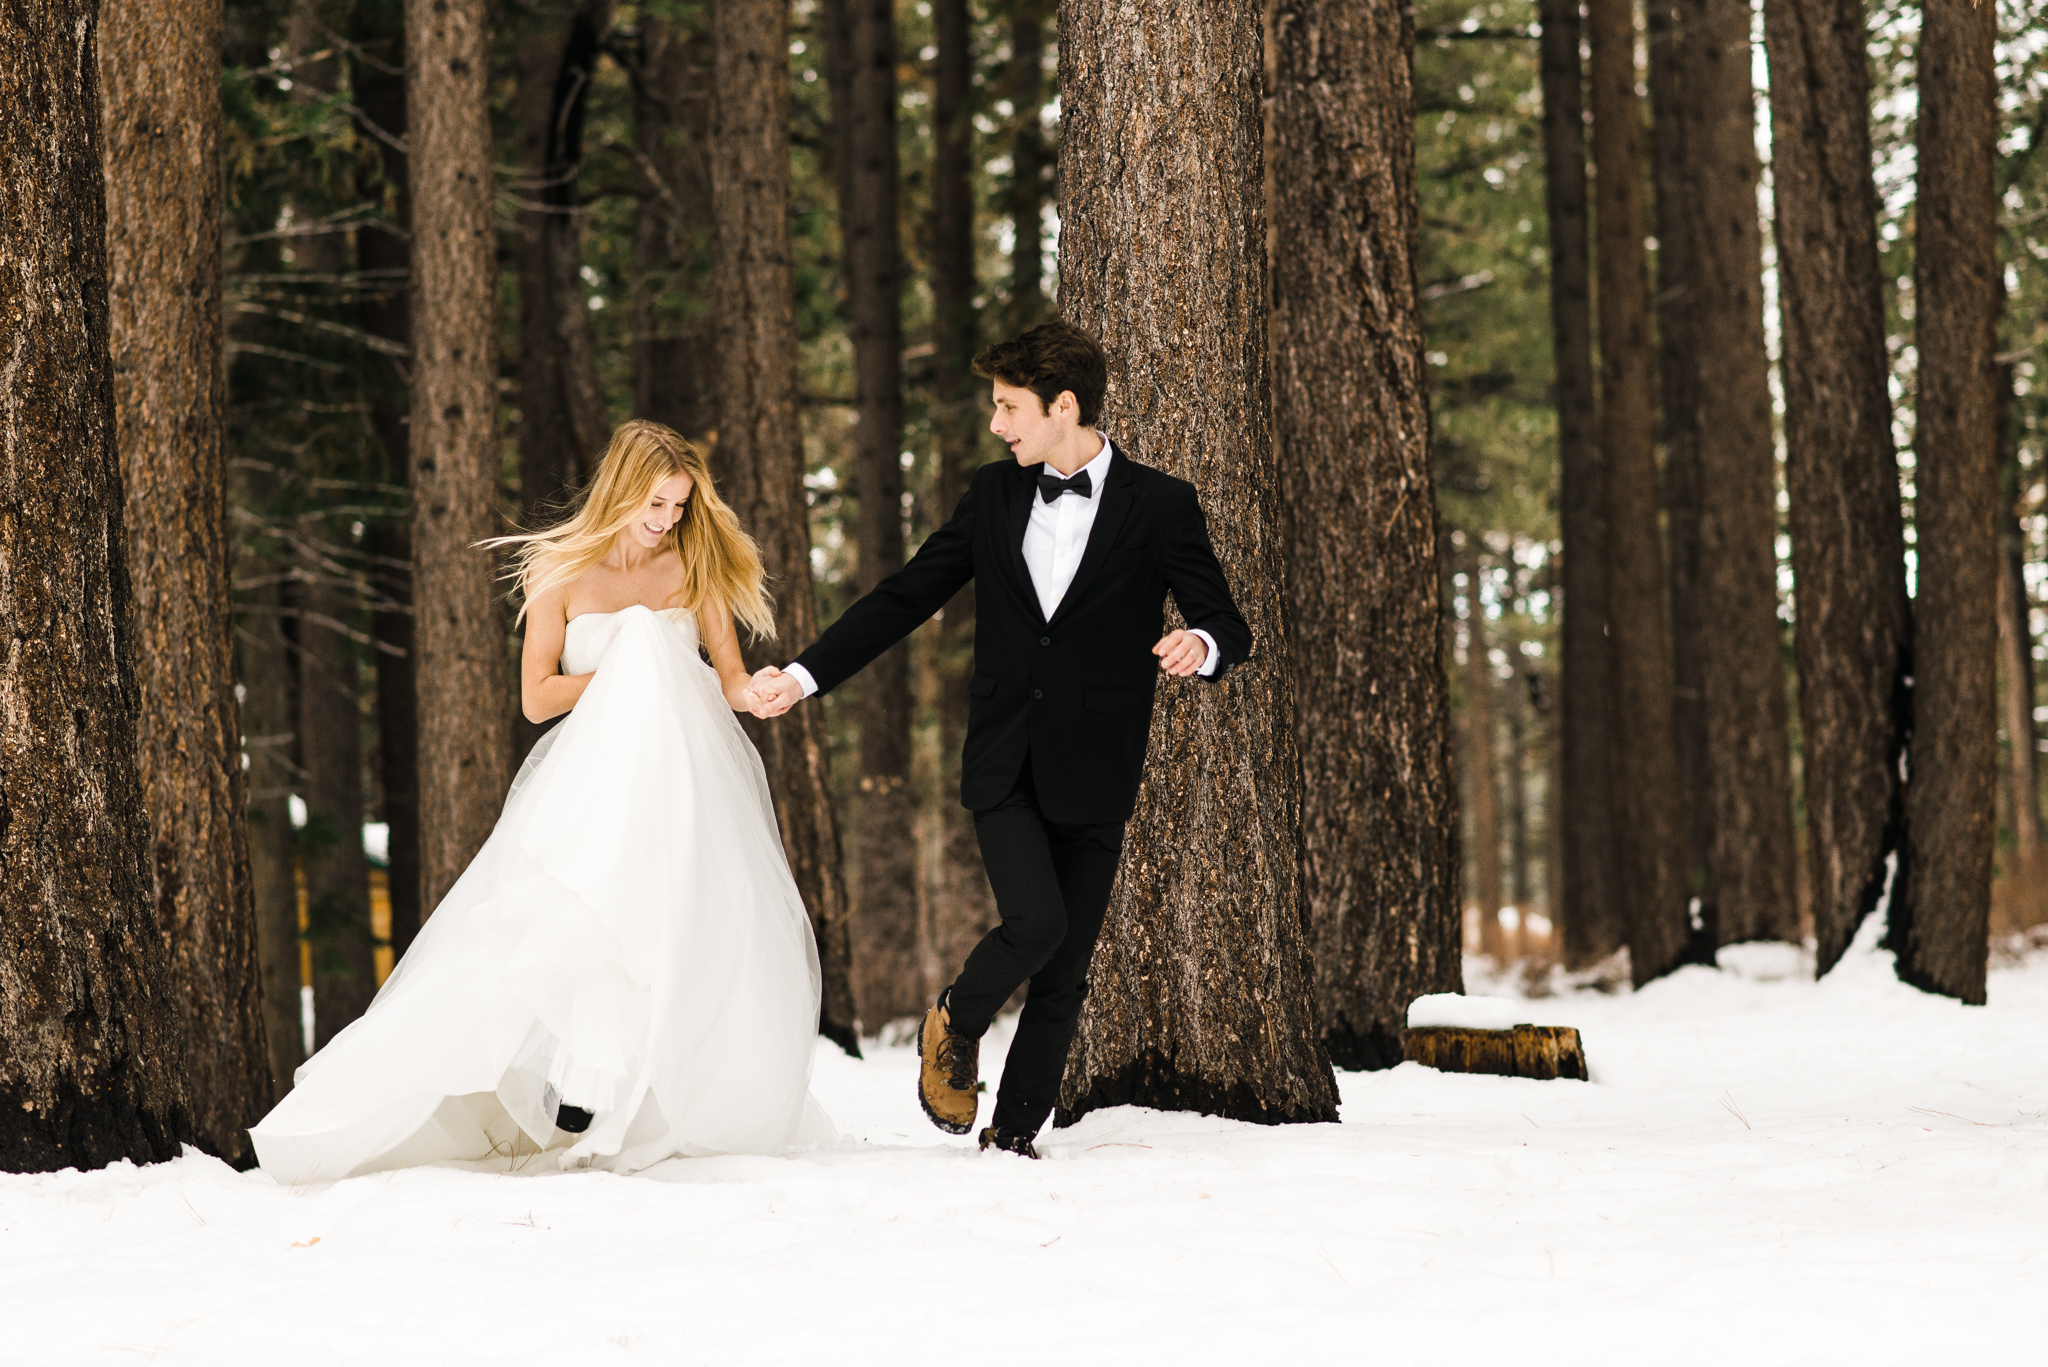 ©Isaiah & Taylor Photography - Ben & Kadin Honeymoon-031.jpg